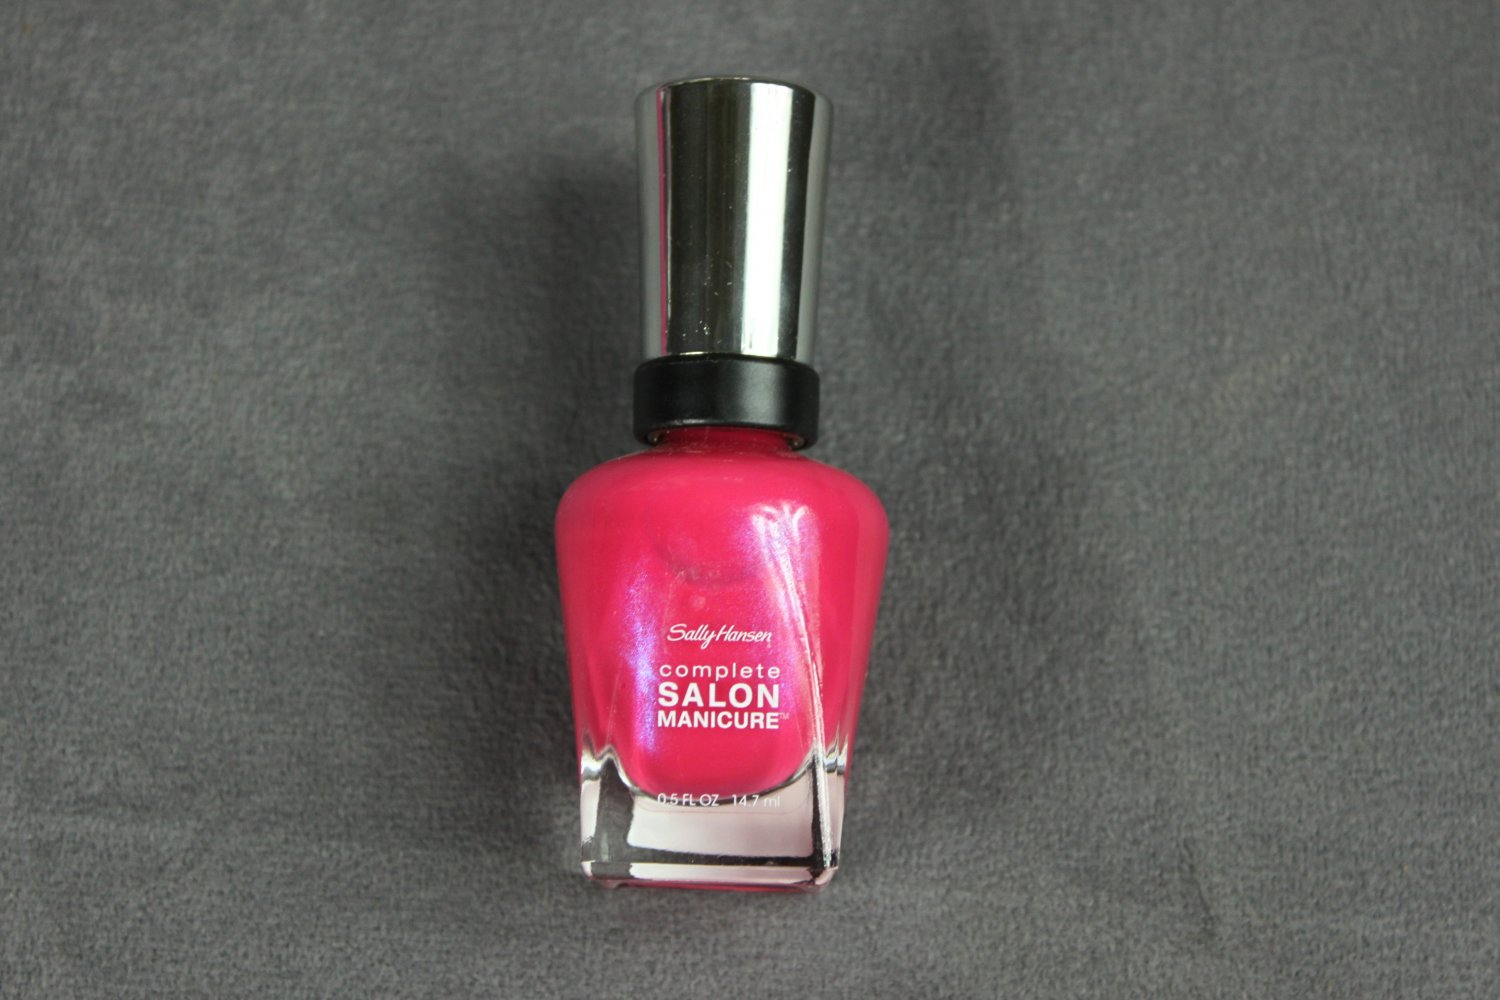 Sally Hansen BACK TO THE FUCHSIA Complete Salon Manicure Nail Polish